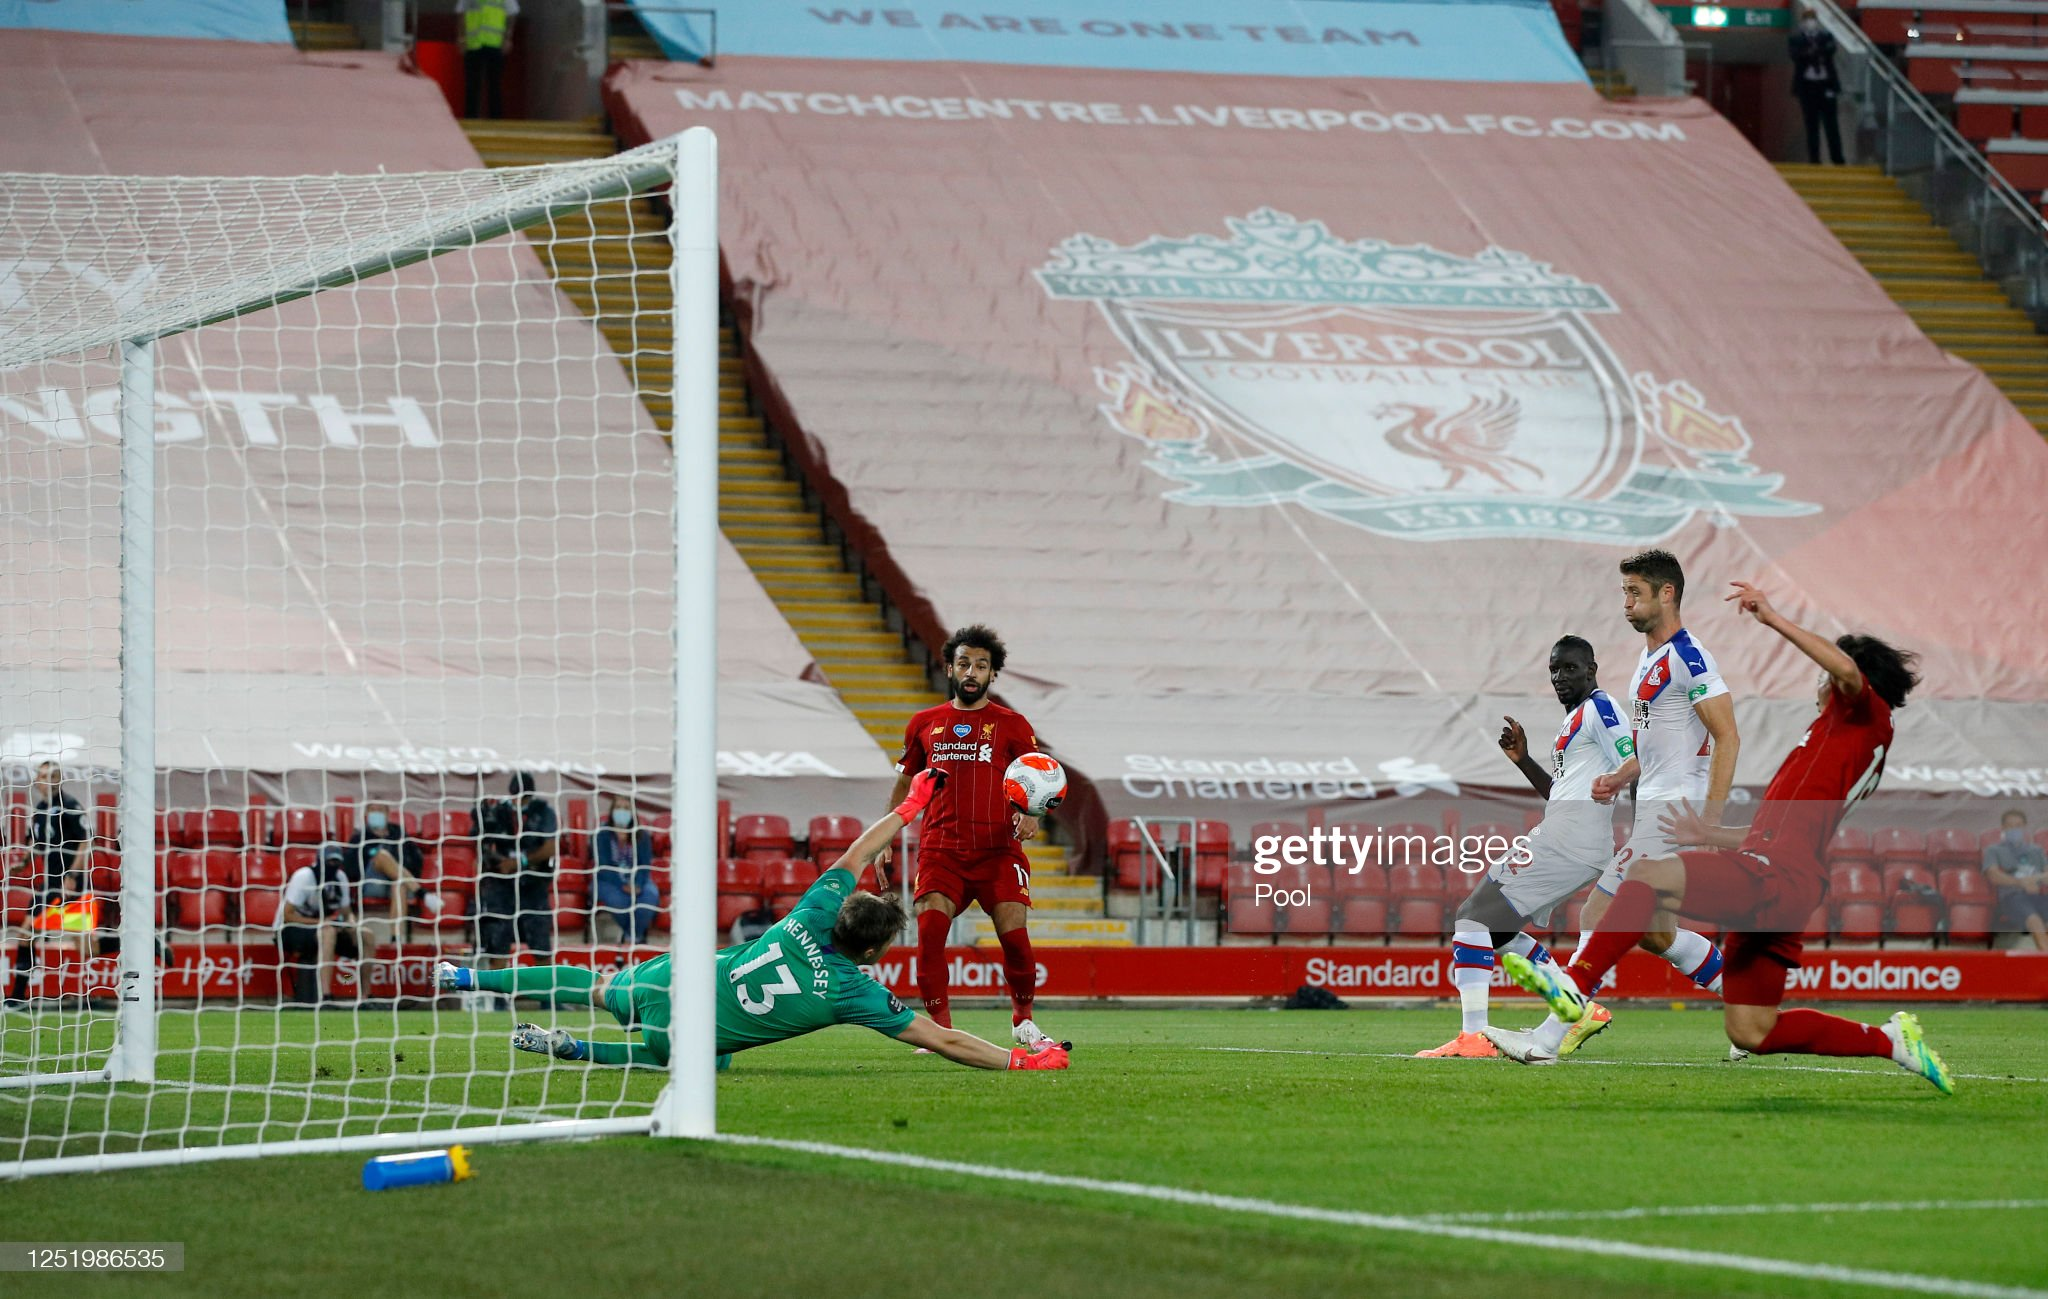 Liverpool vs Crystal Palace Preview, prediction and odds